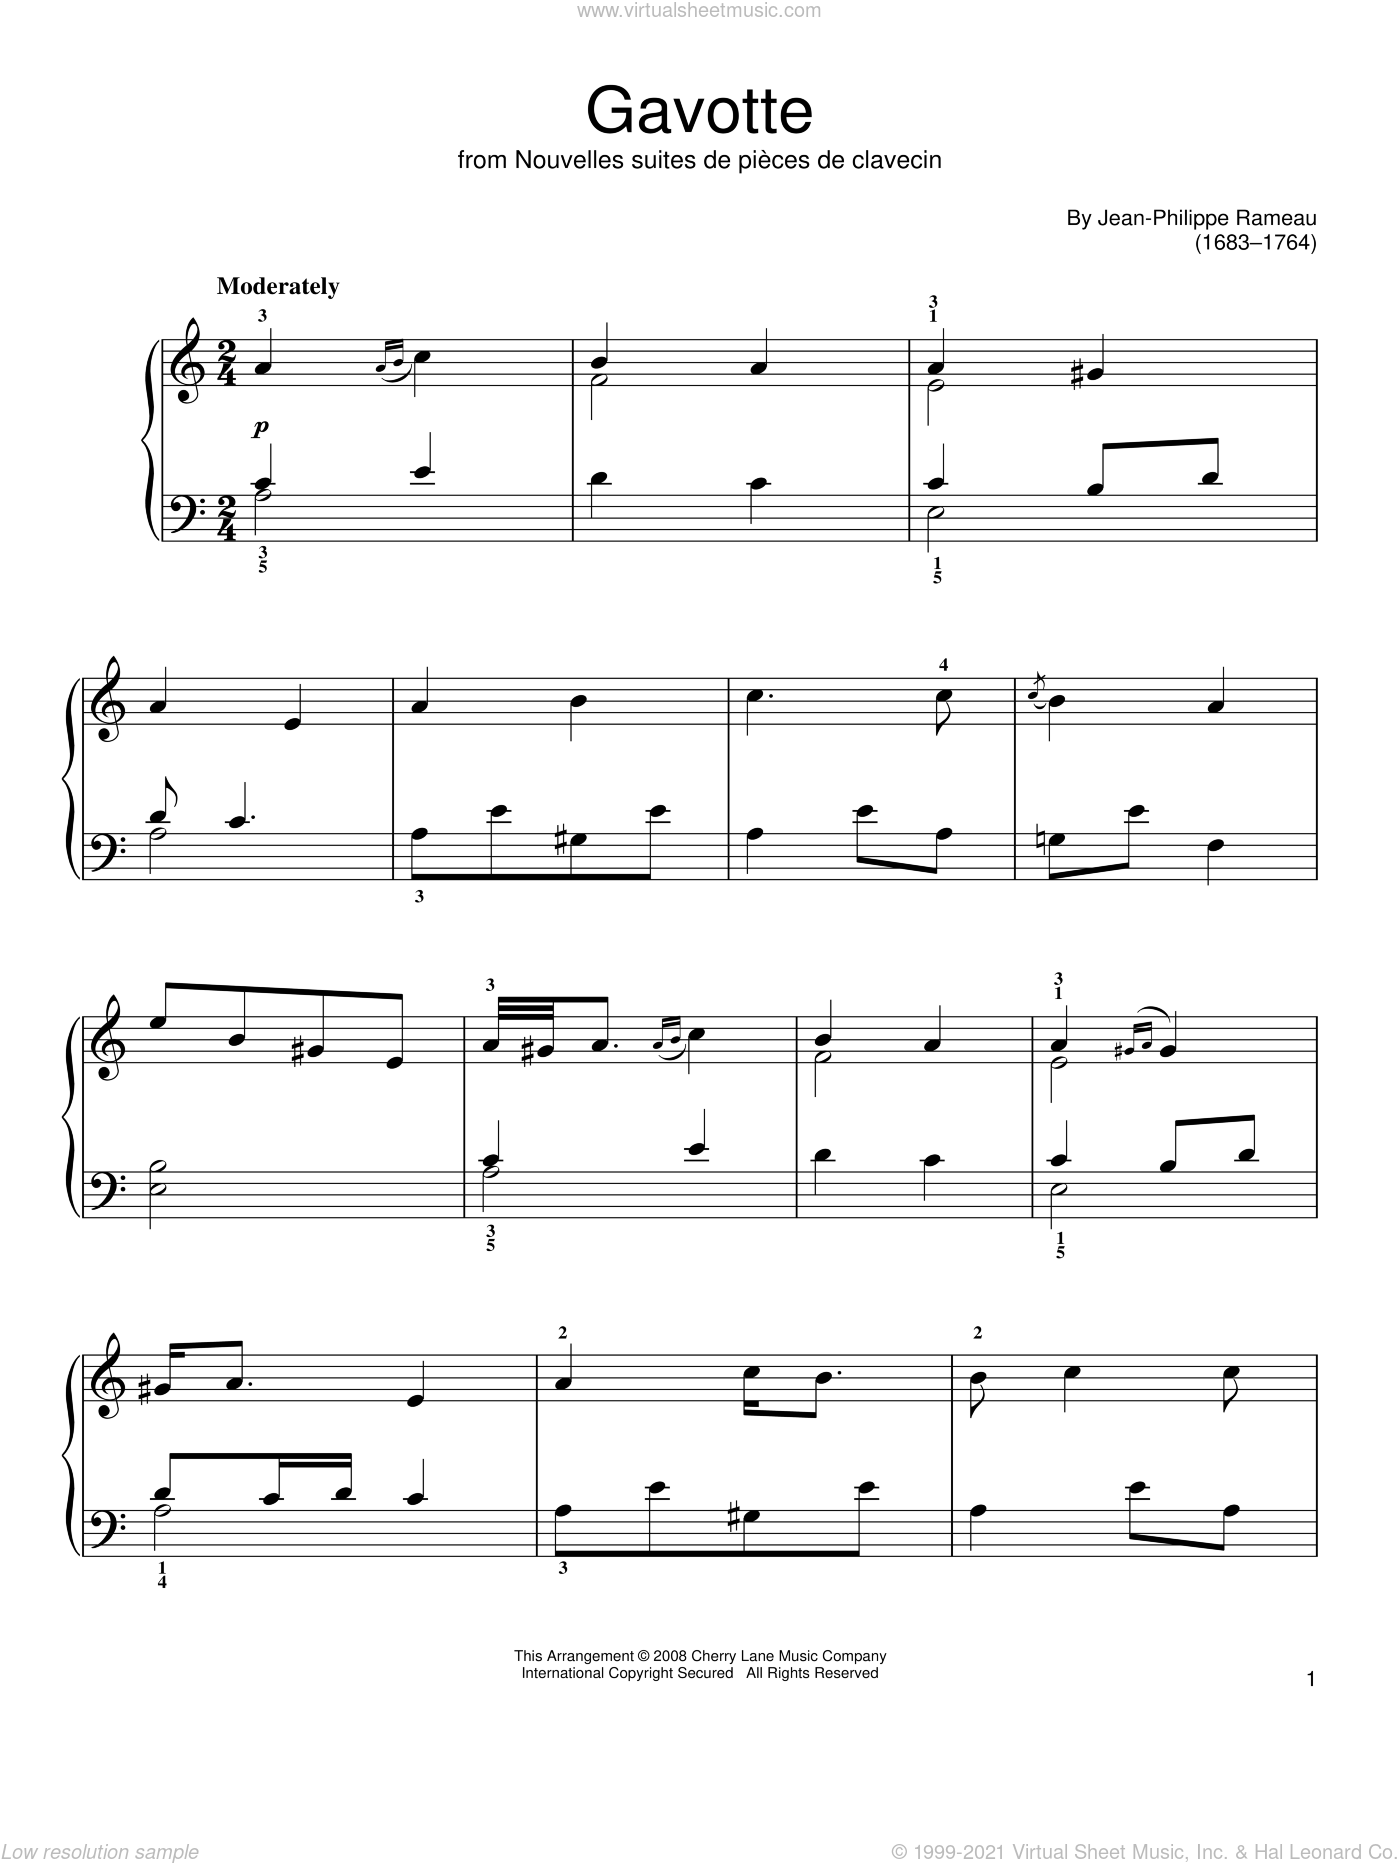 Gavotte sheet music for piano solo by Jean-Philippe Rameau, classical score, easy skill level